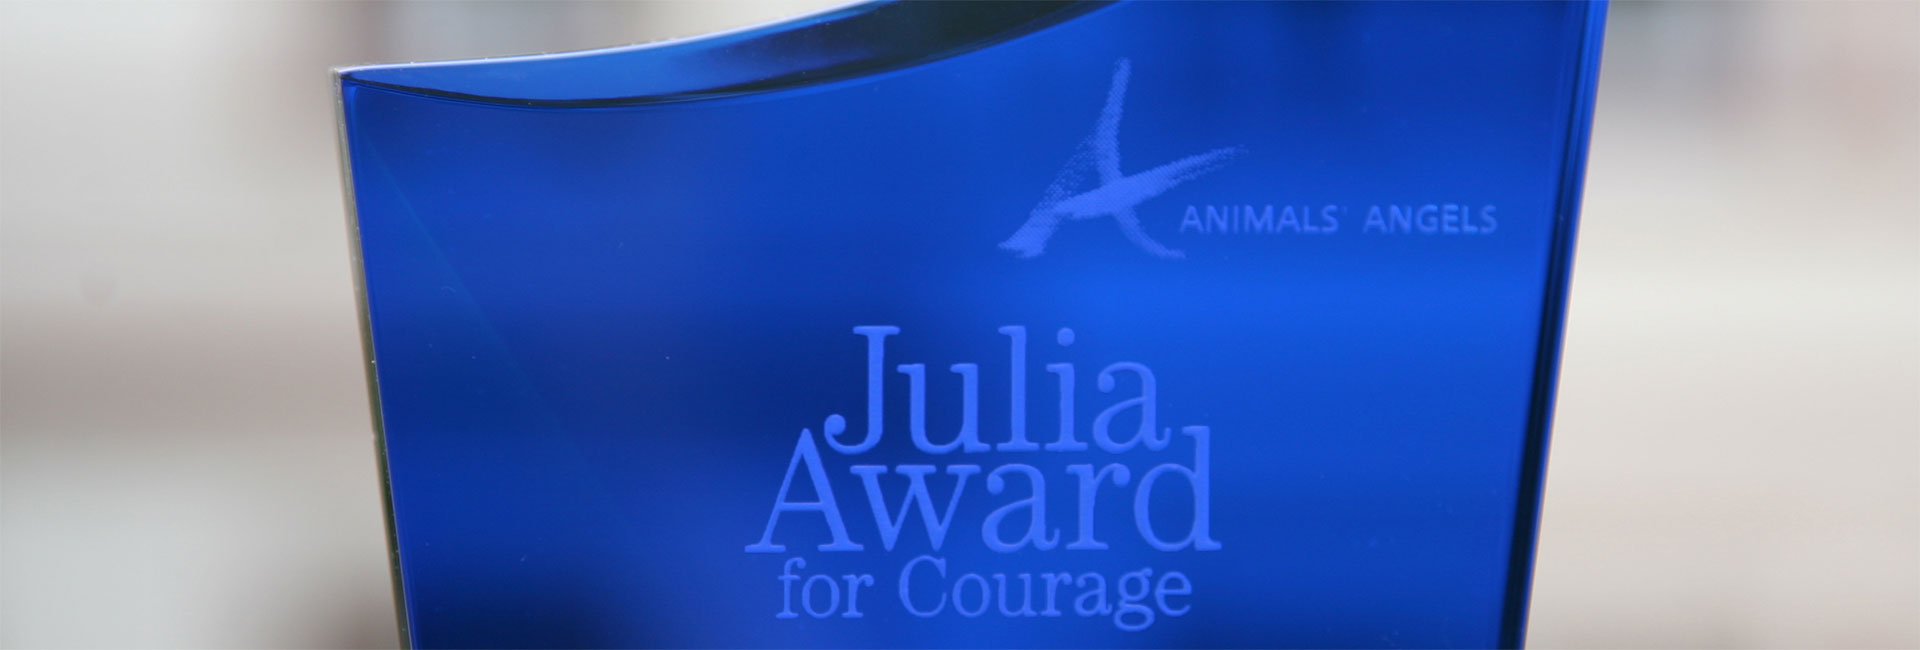 Animals' Angels Julia Award for Courage